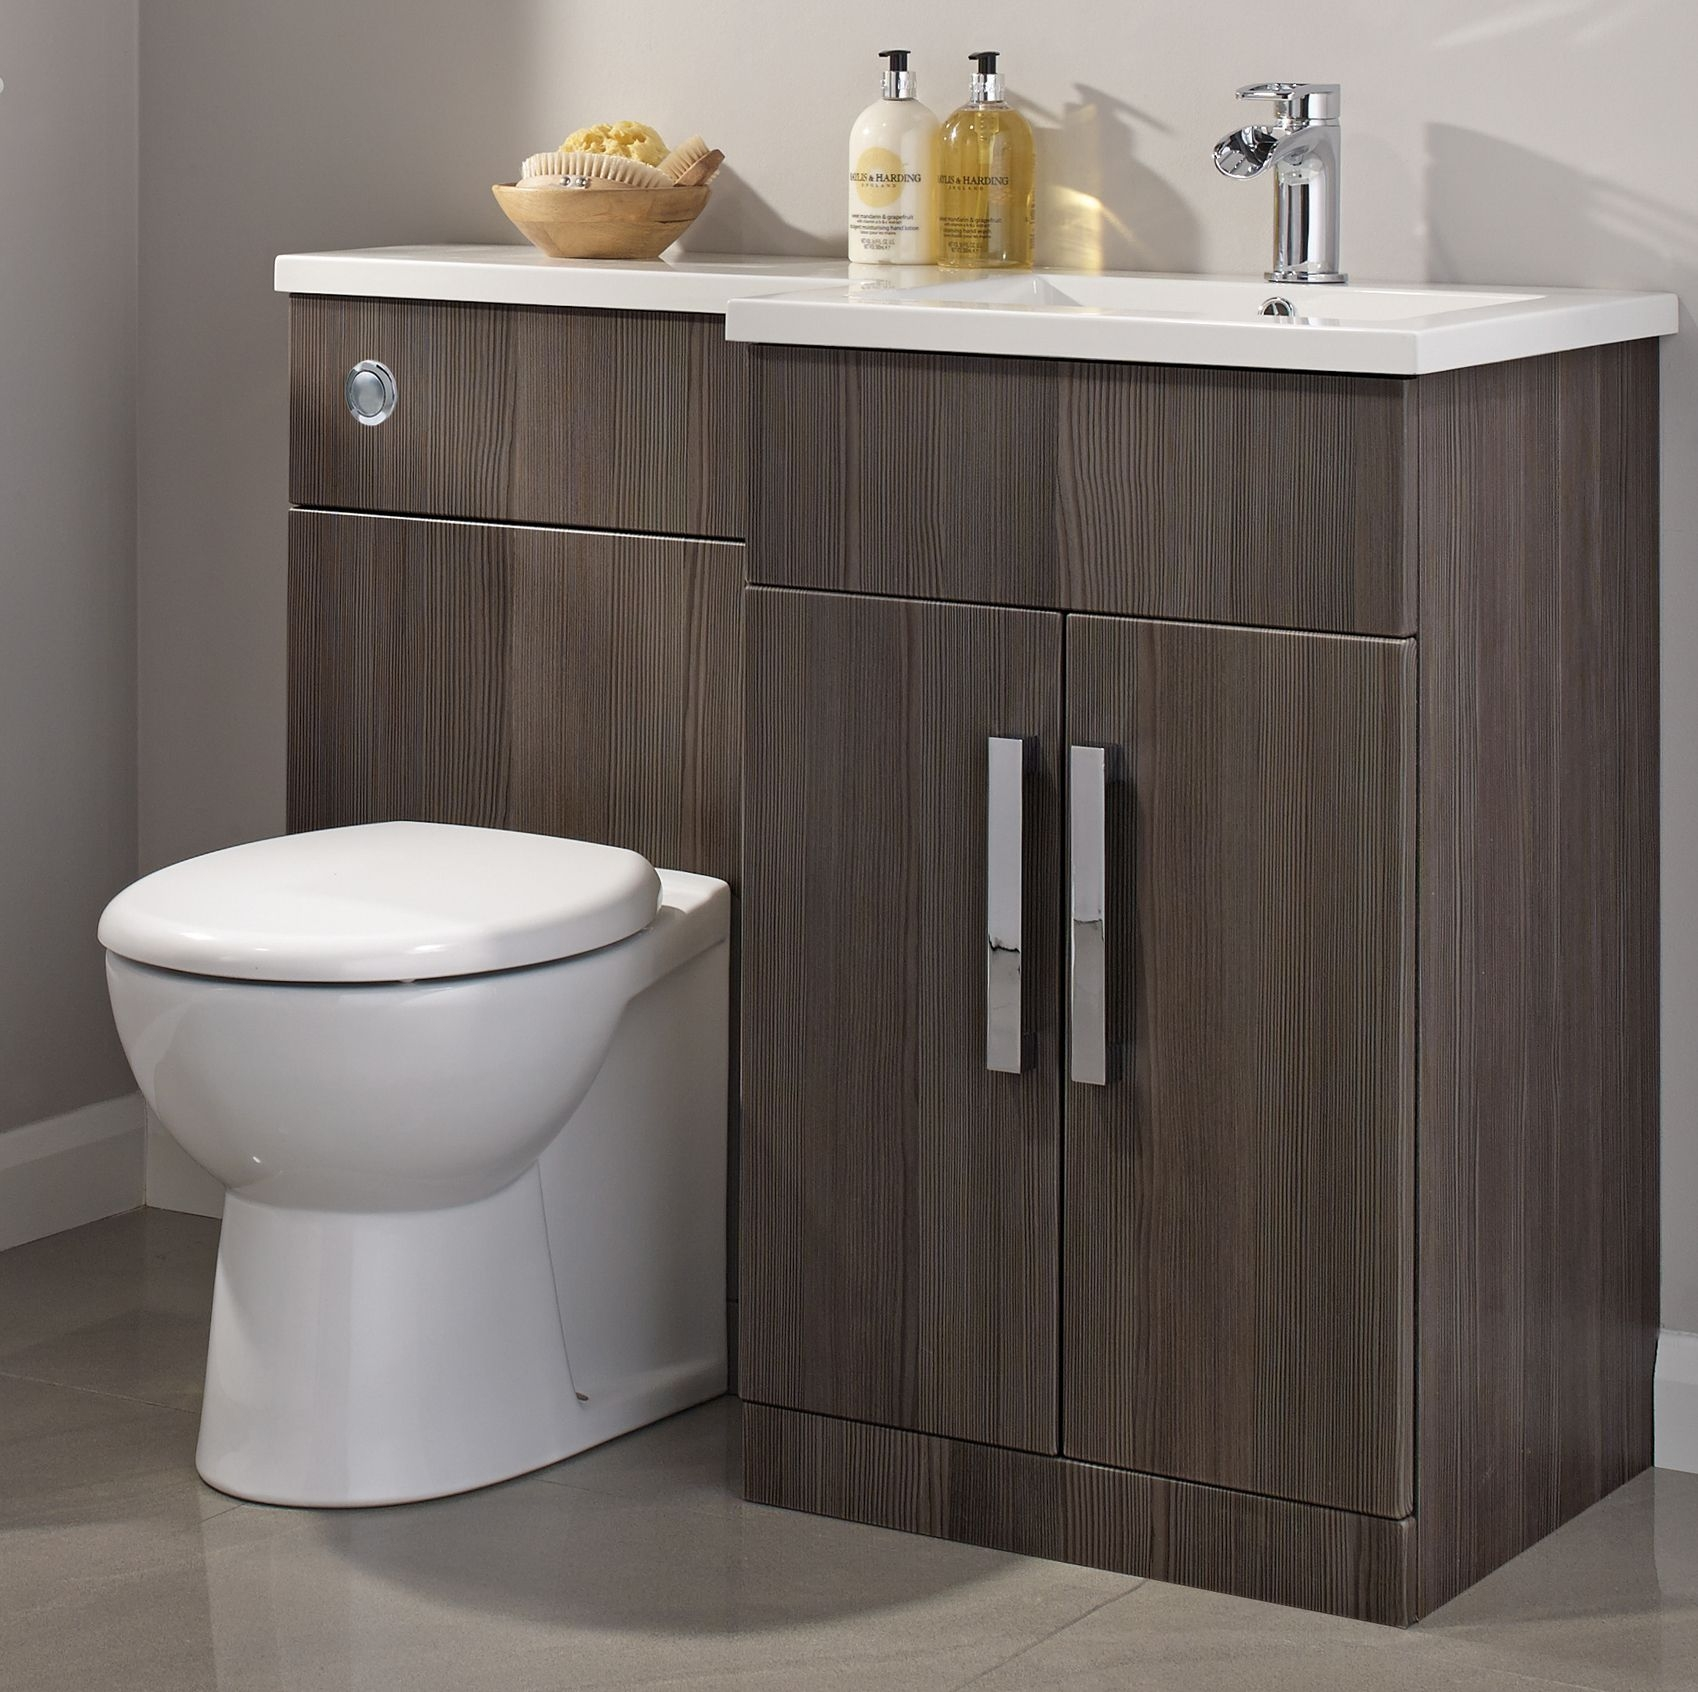 Fitted Bathroom Furniture B And Q